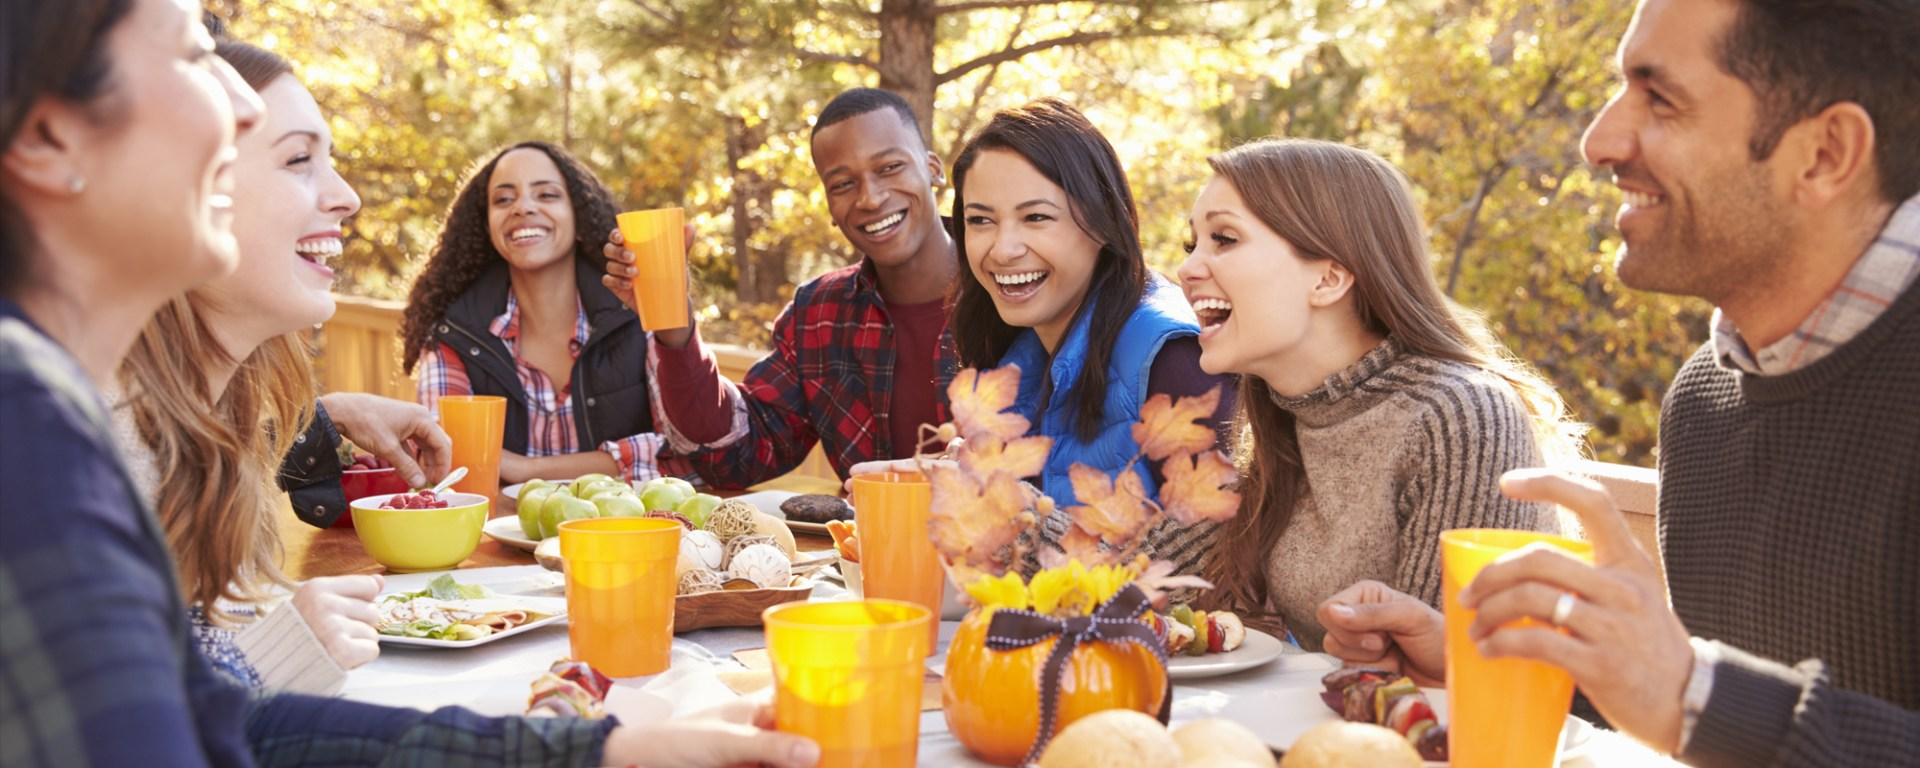 Outdoor Fall Drinks with group of friends